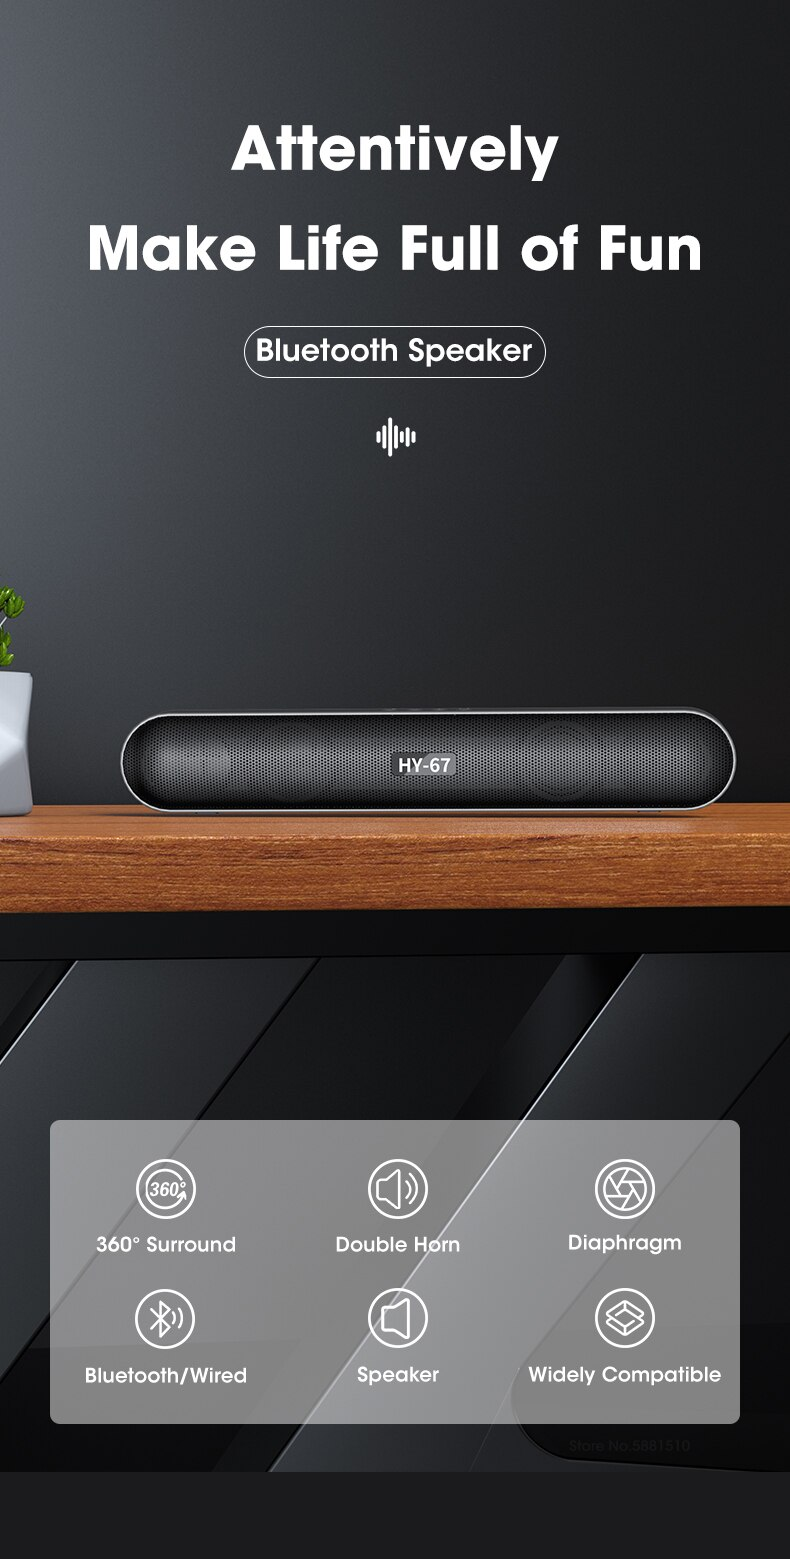 H93933ca25170411c97aed6170292a33eP - Computer Soundbar Desktop Bluetooth Speakers Rechargeable 6D Deep Bass Stereo Subwoofer AUX Wired For Laptop PC TV Loudspeaker